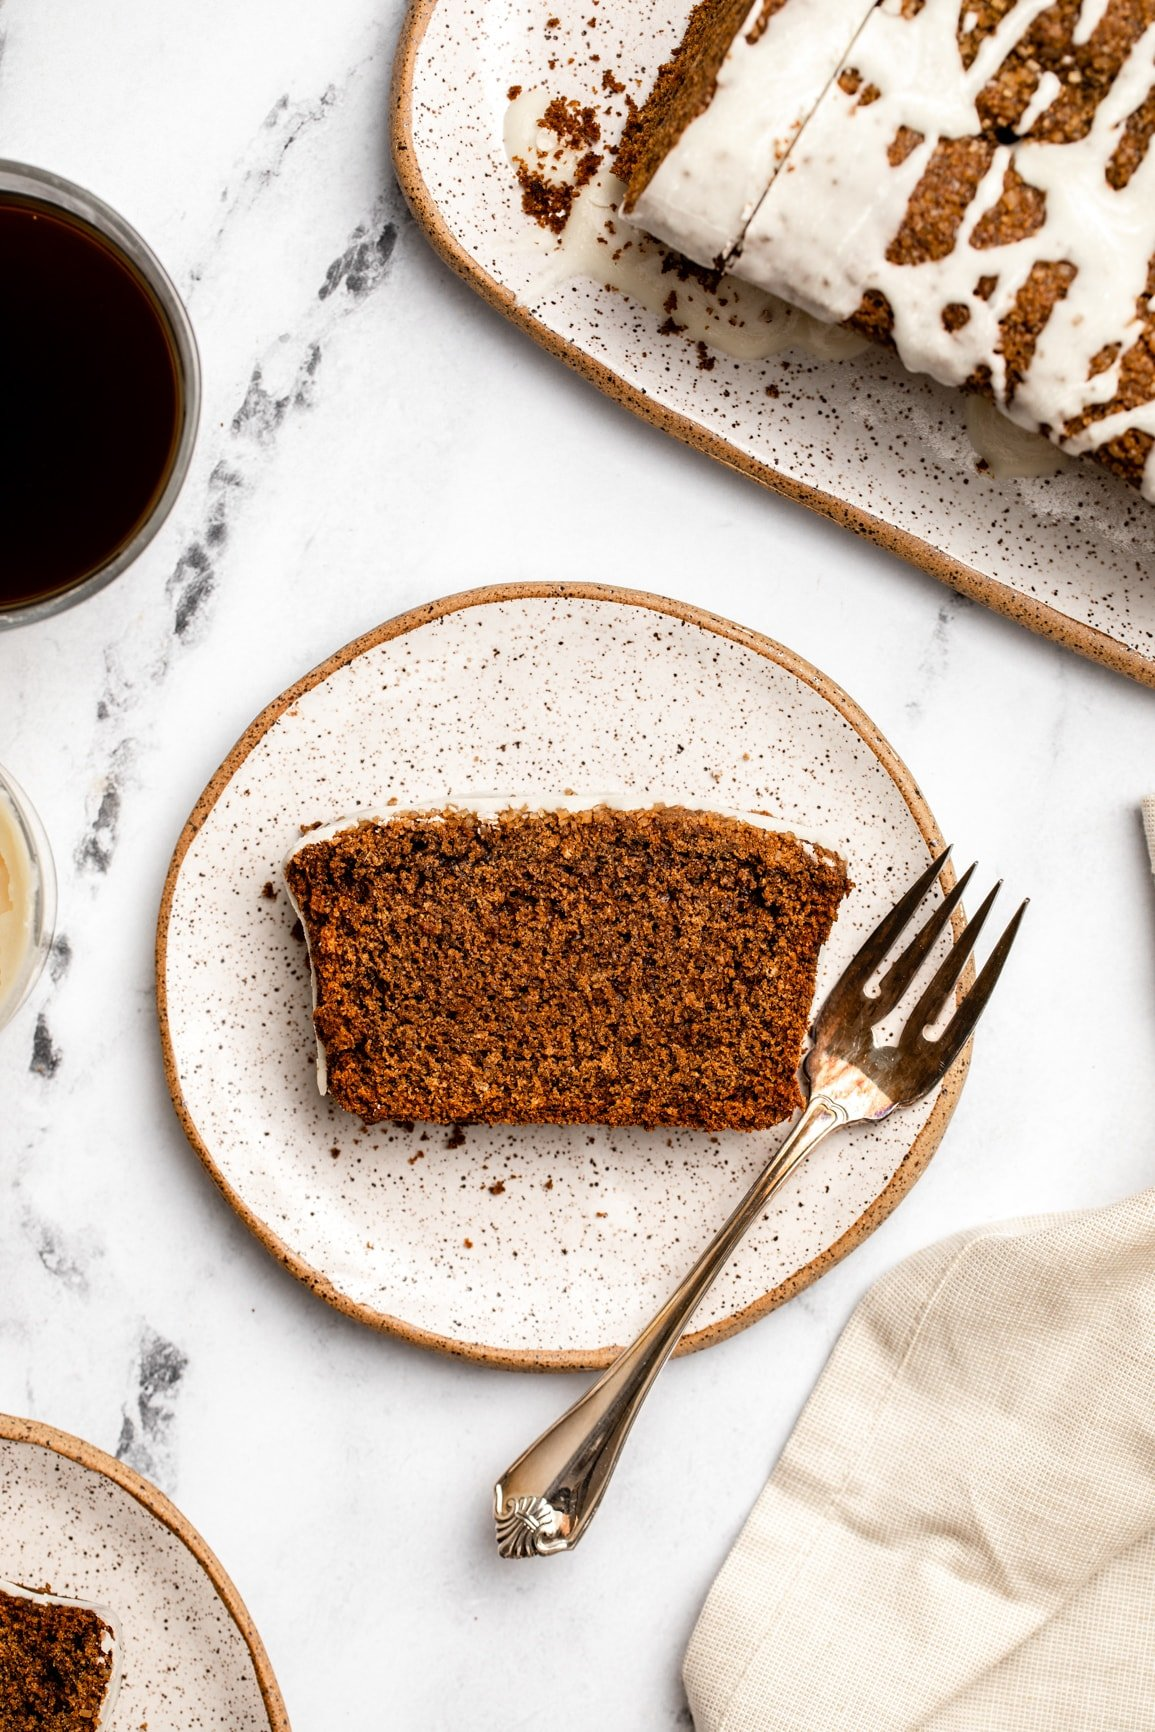 slice of gingerbread loaf on small white plate next to cup of coffee and rest of gingerbread loaf on white serving tray